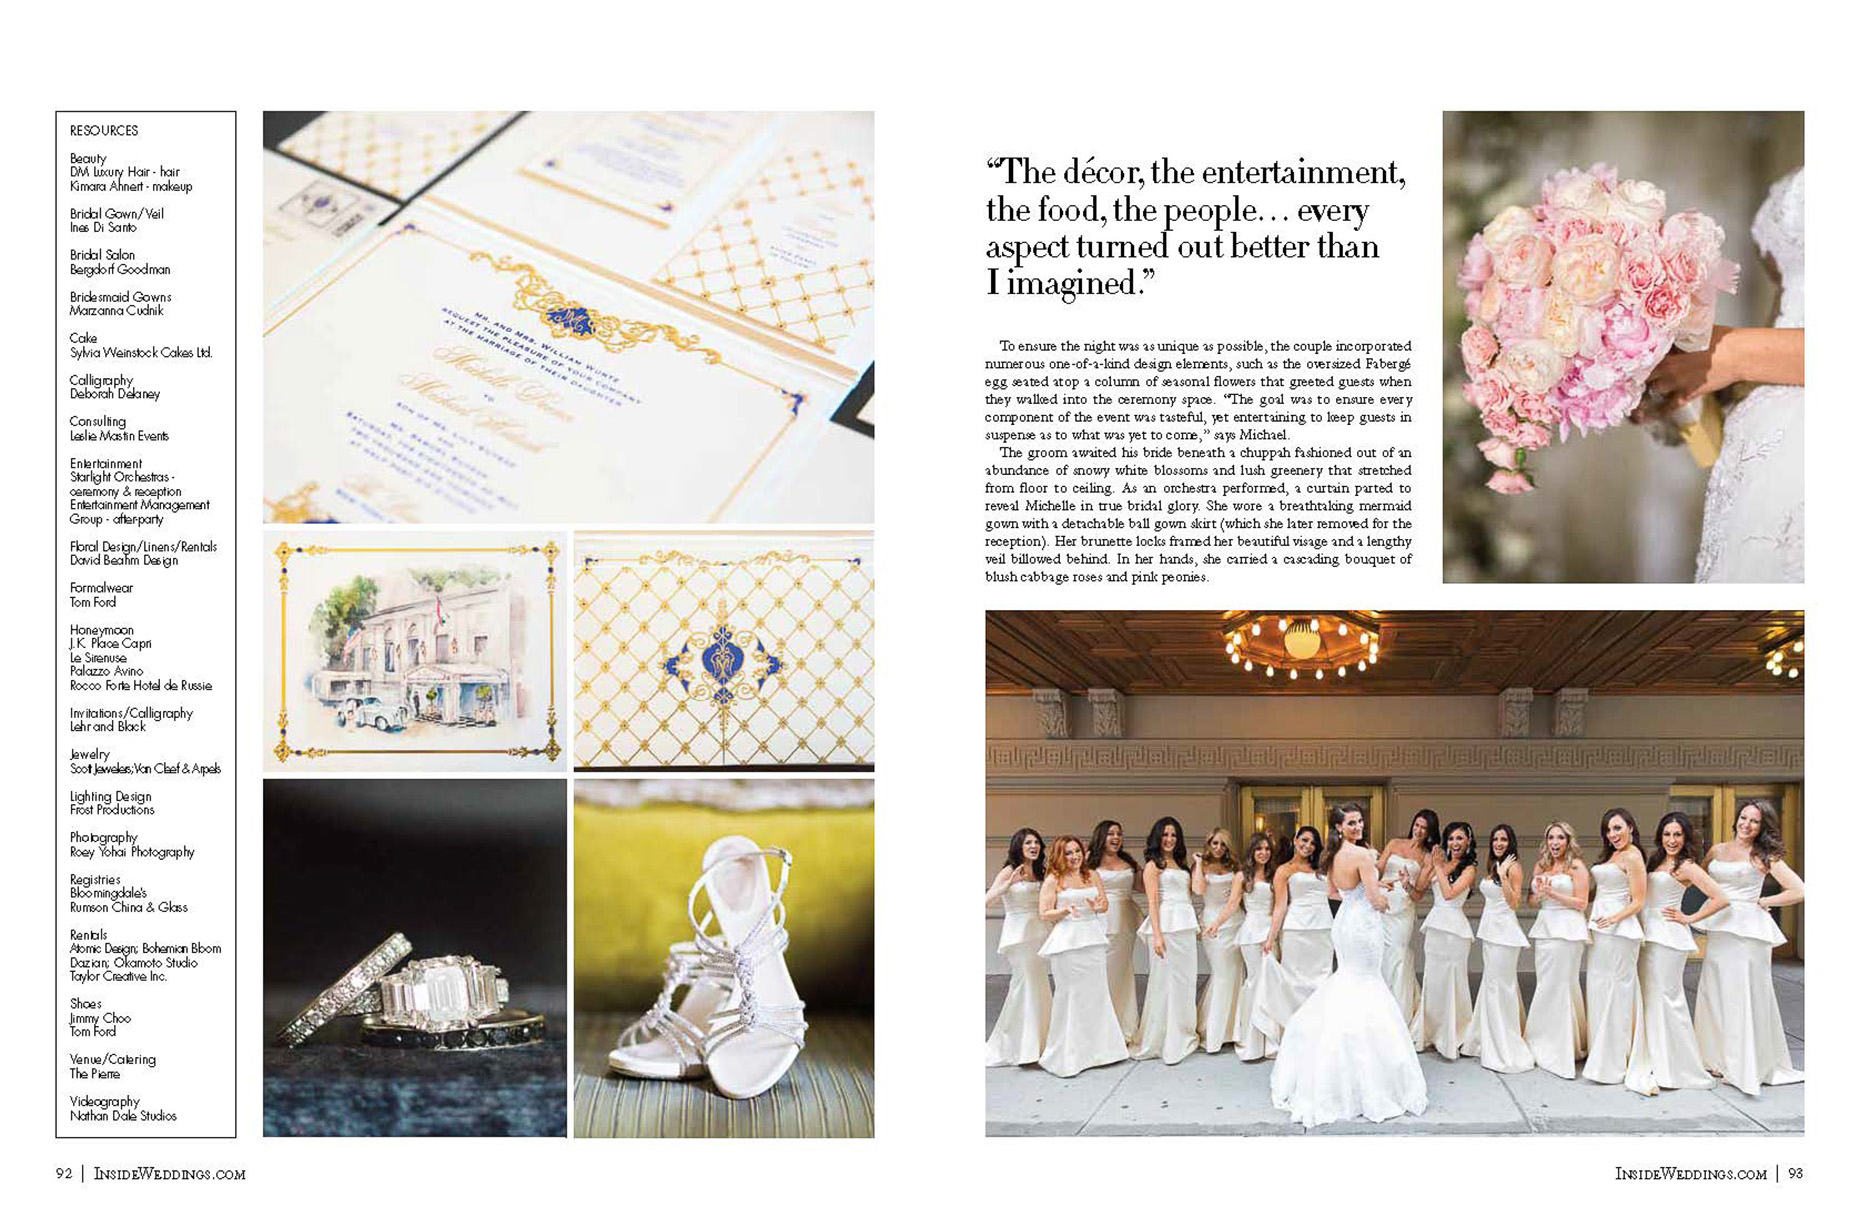 007_InsideWeddings_spread2_spring2014